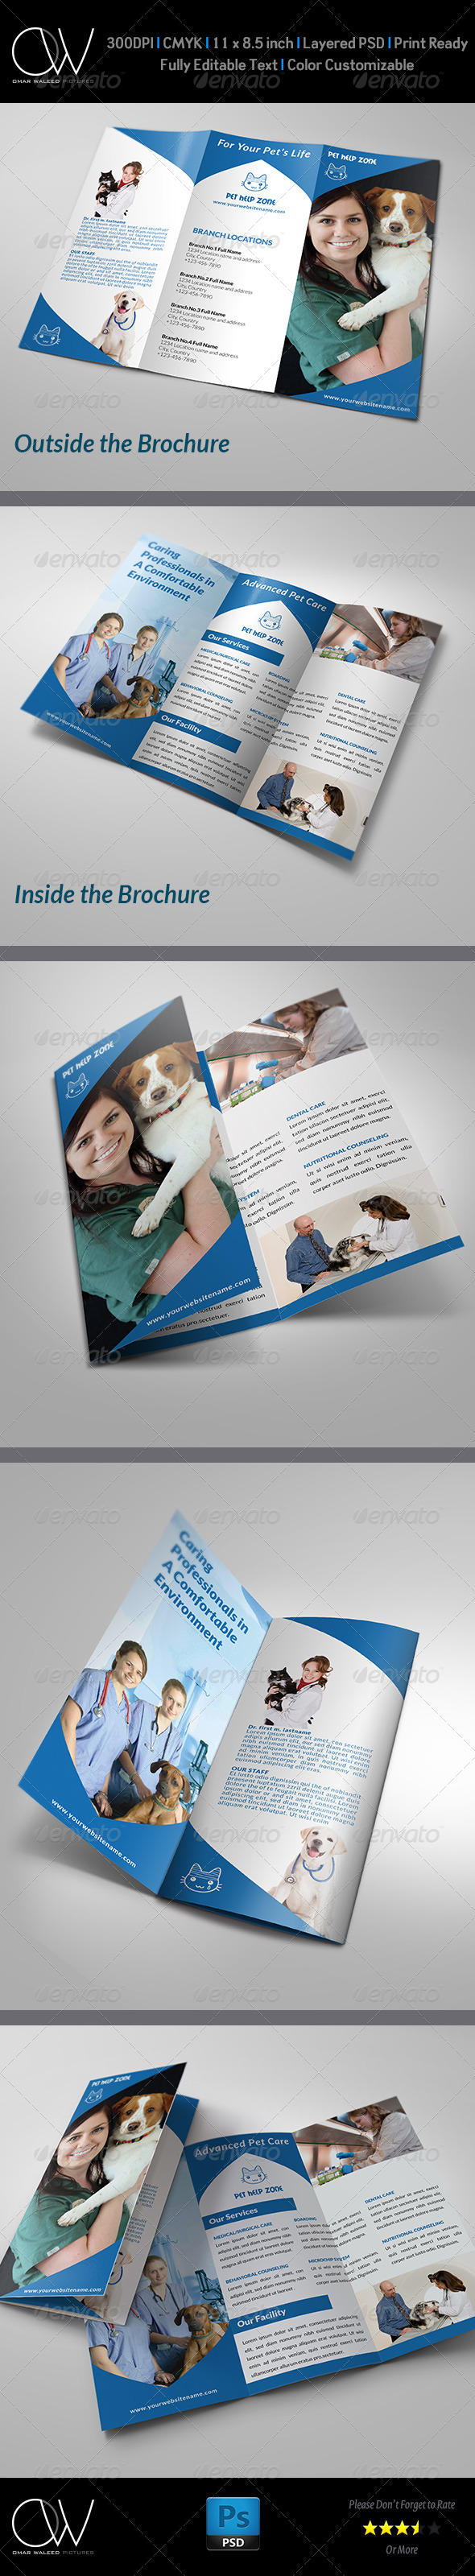 GraphicRiver Veterinarian Clinic Brochure Template 5027716